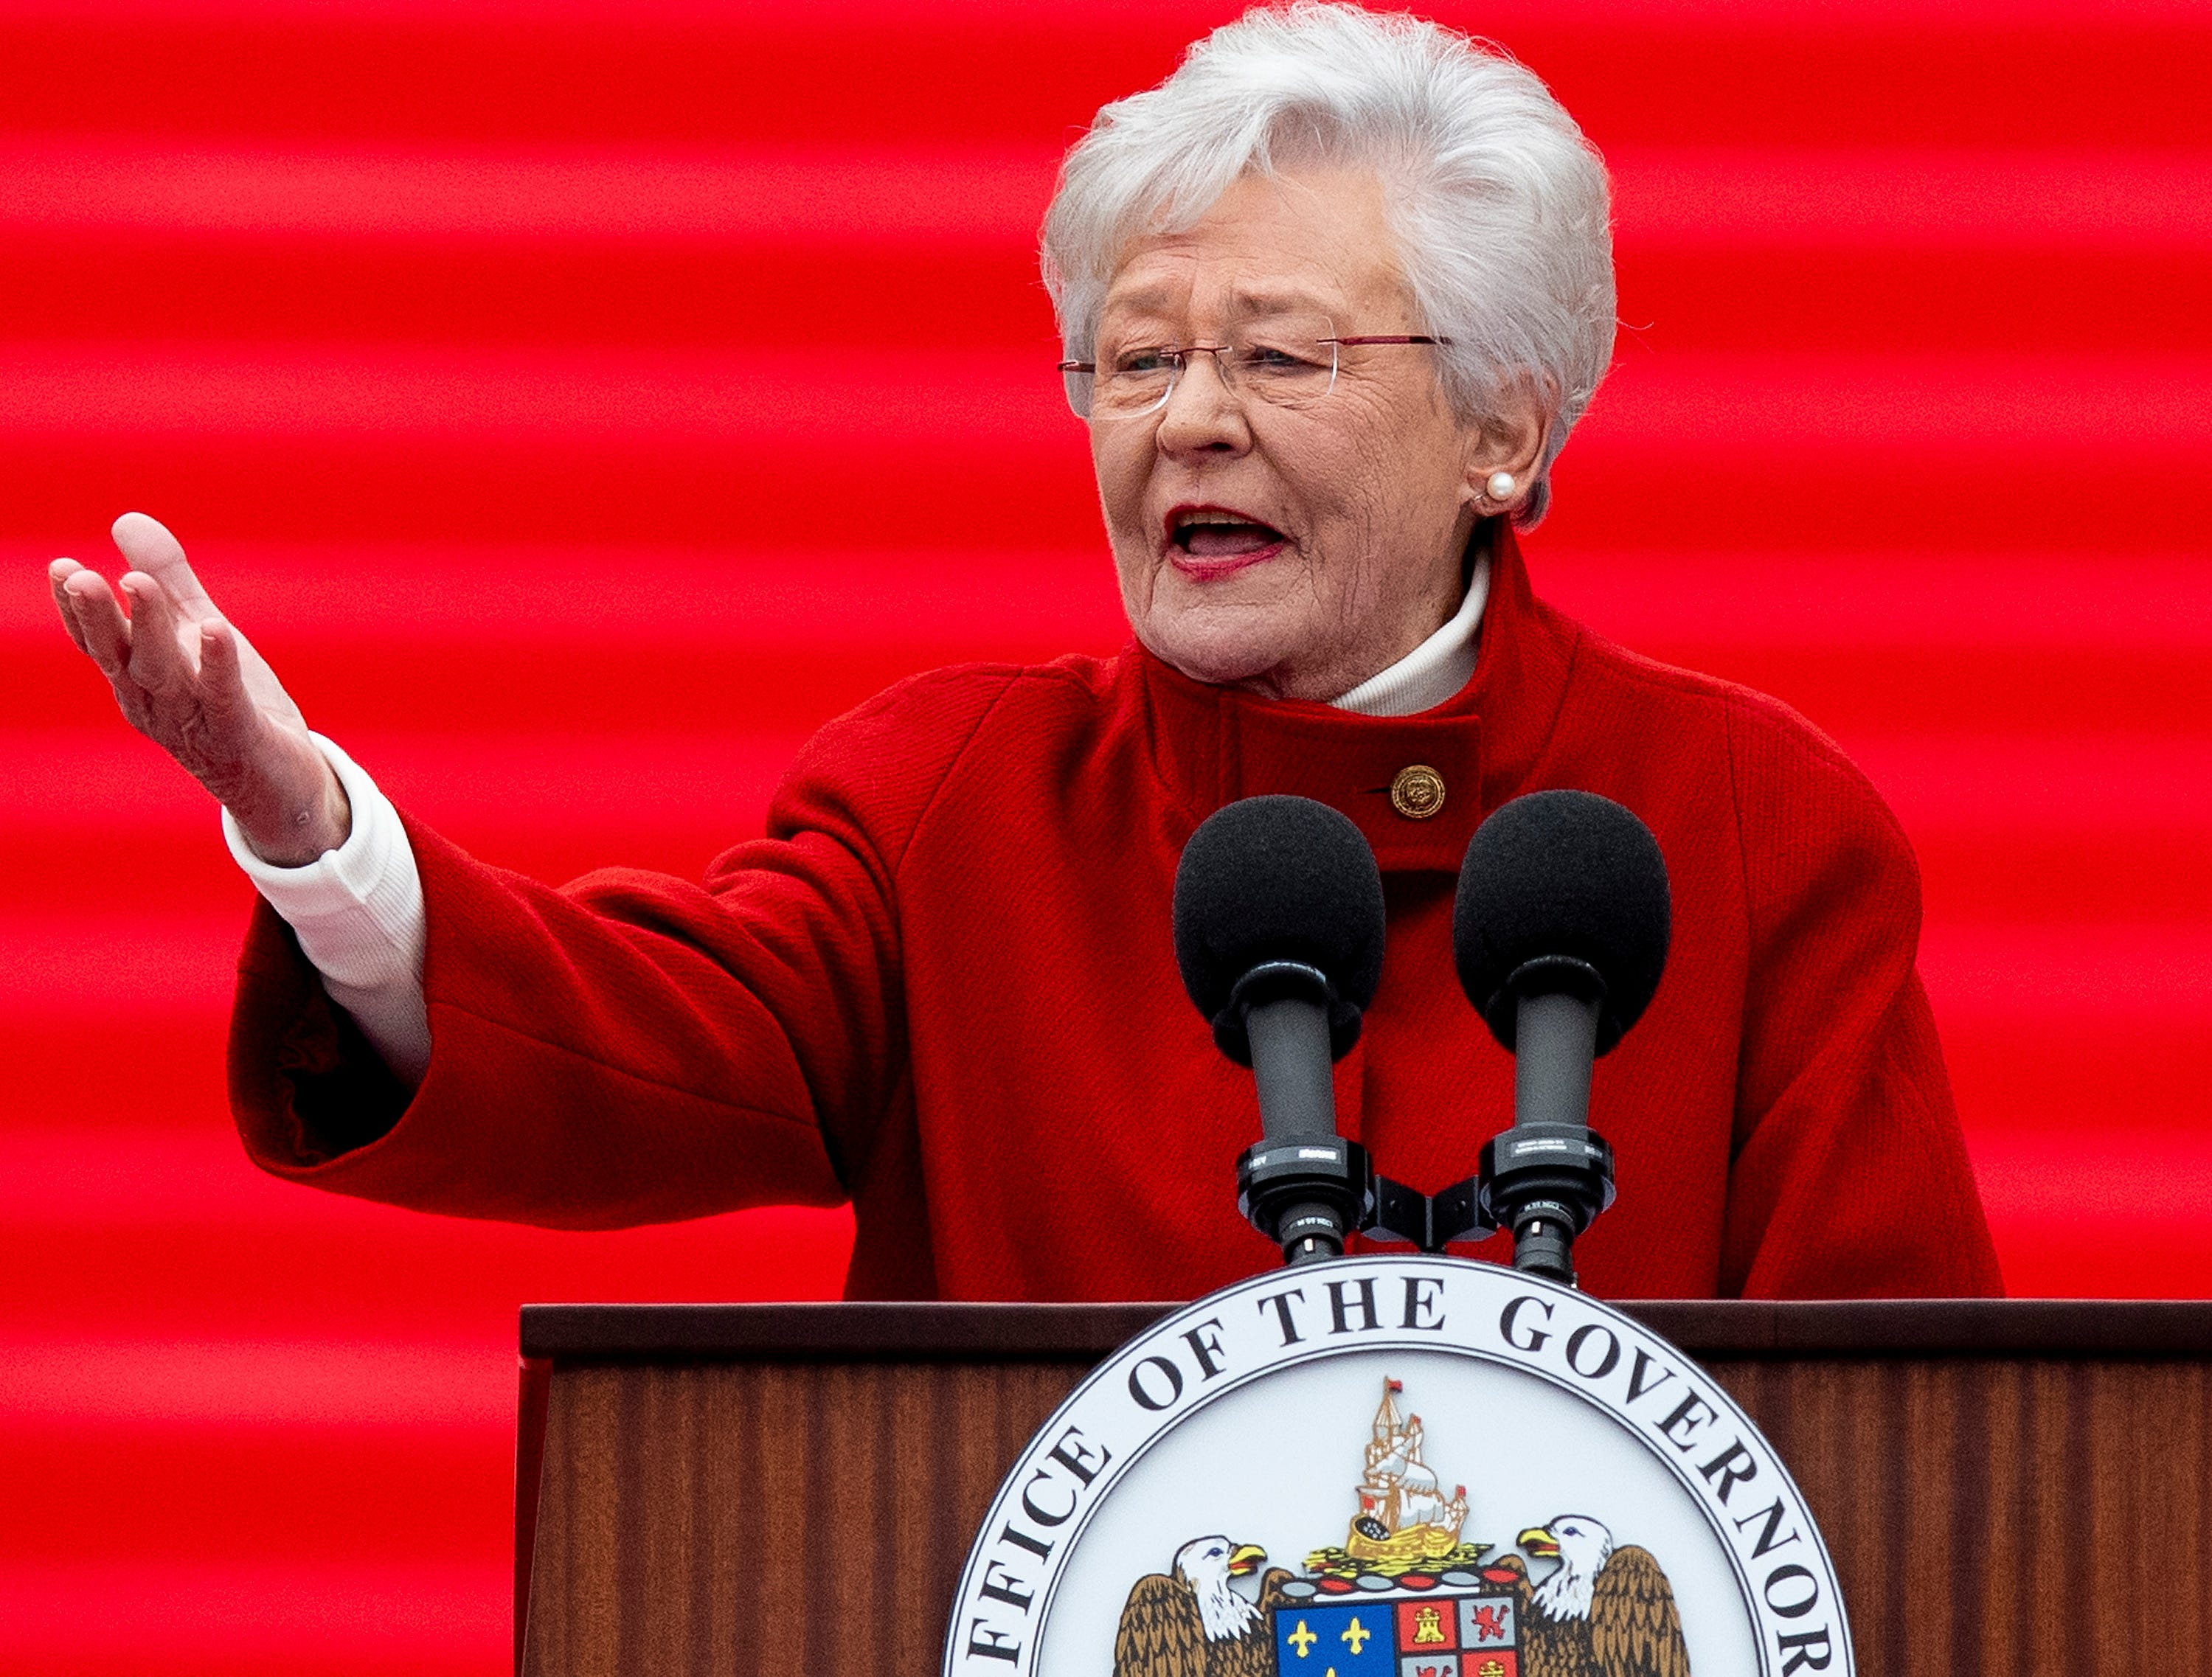 Governor Kay Ivey speaks during her Inauguration on the state capitol steps in Montgomery, Ala., on Monday January 14, 2019.